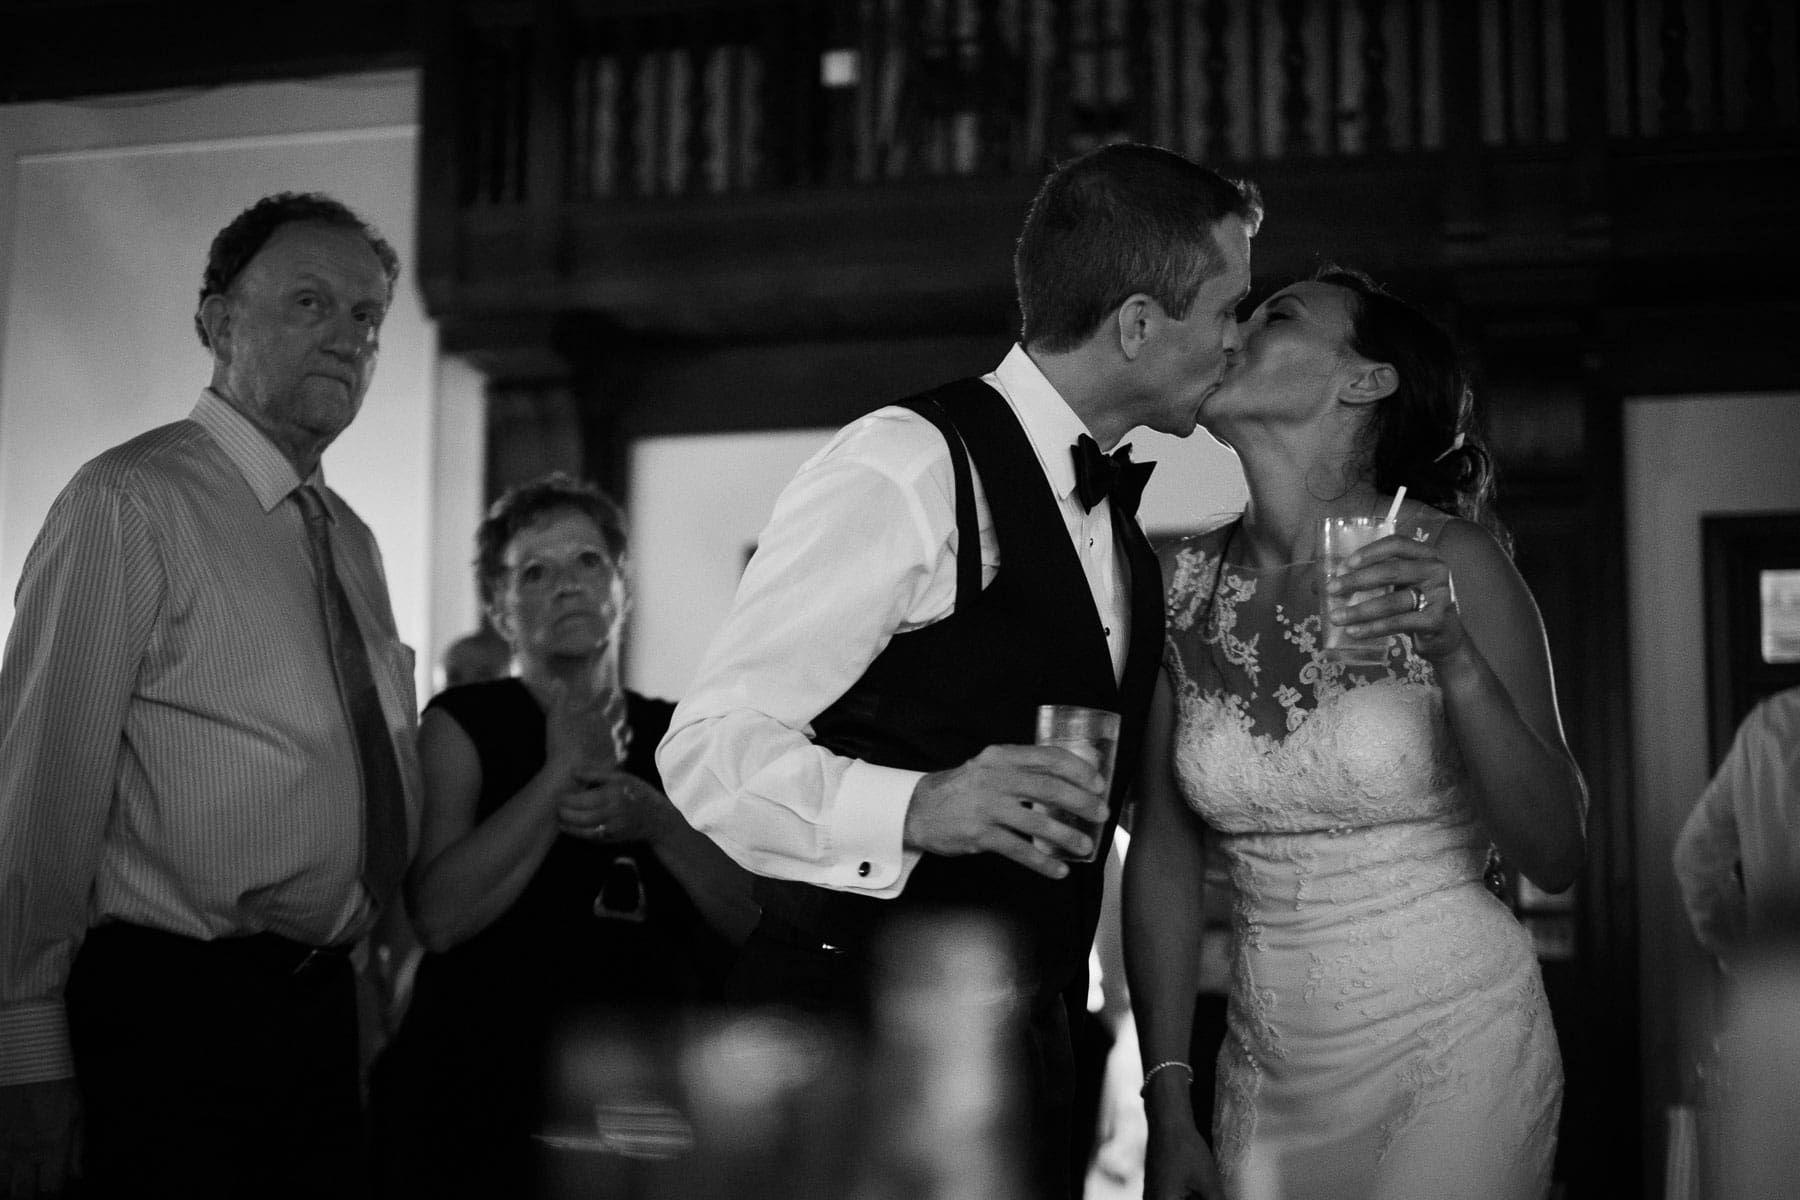 The bride and groom kiss at the end of the night at this Boulevard Club wedding.